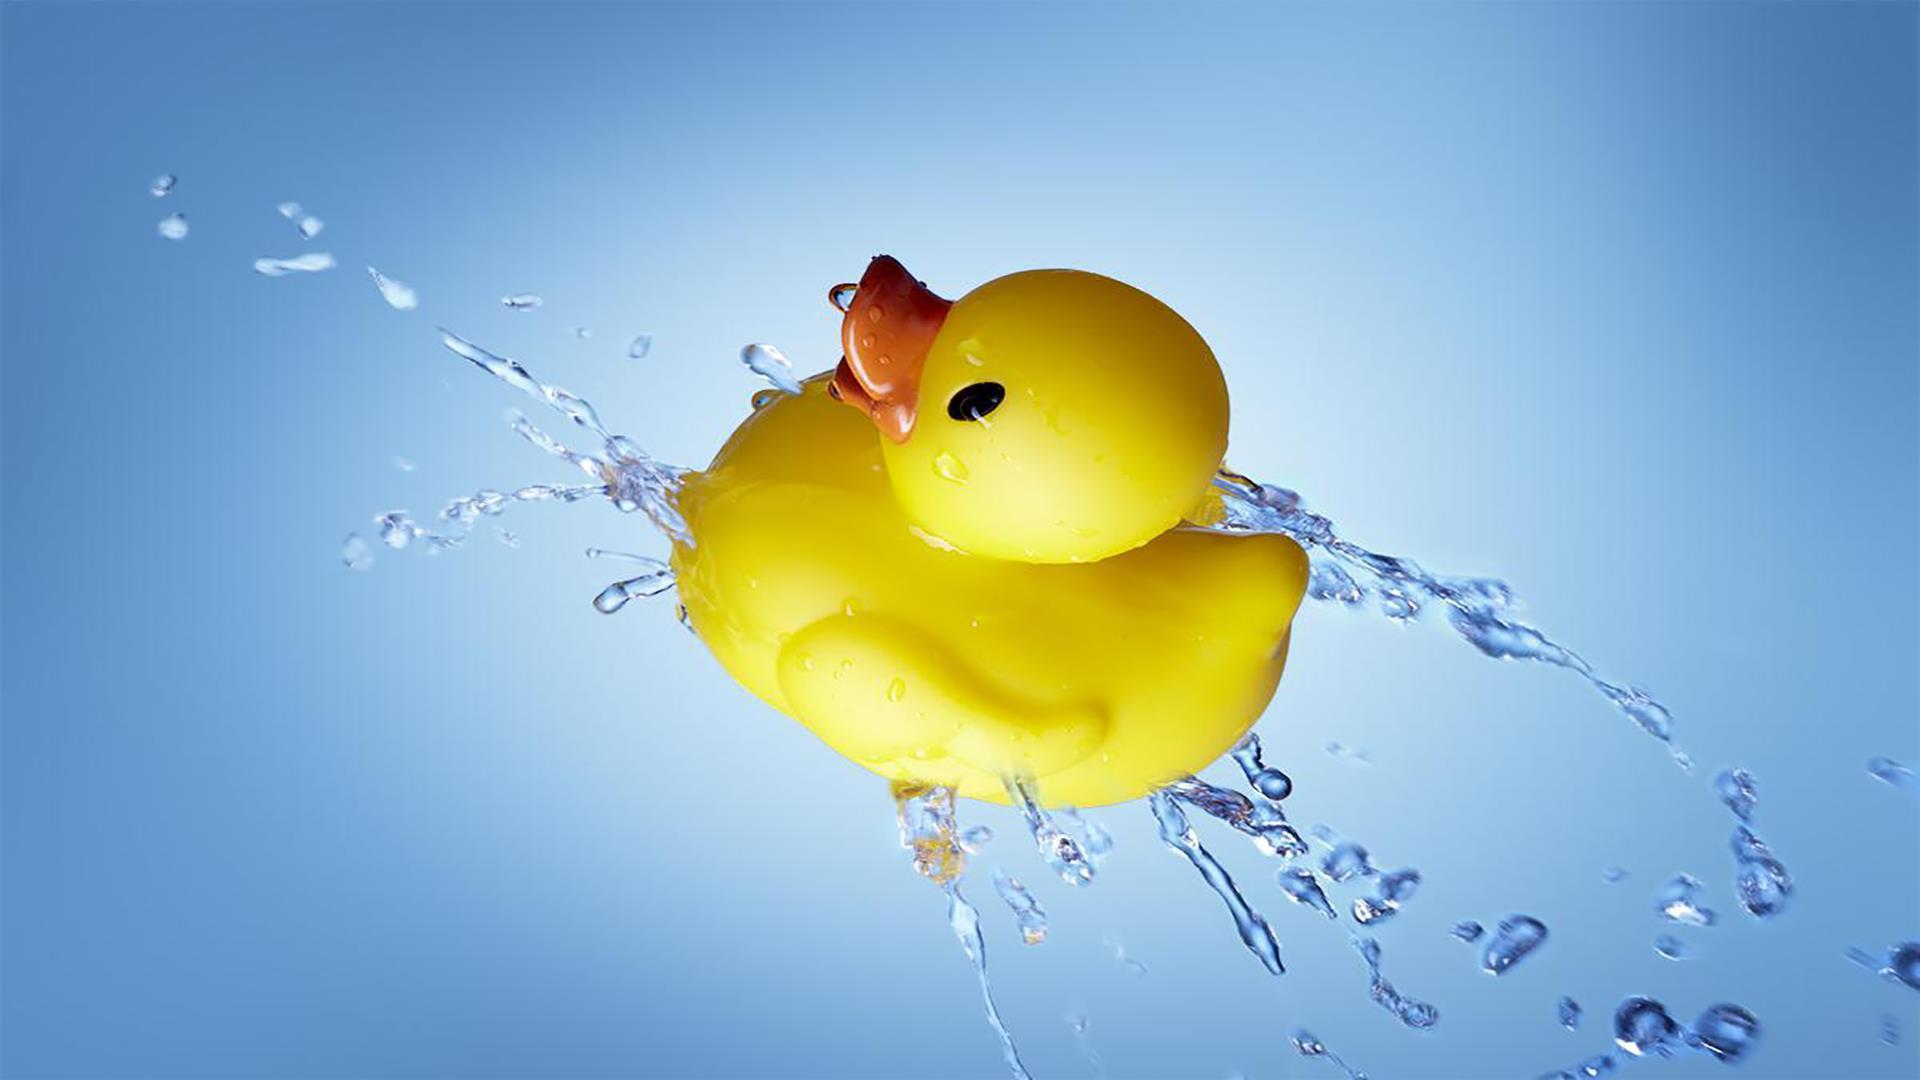 Rubber duck Live Wallpaper for Android   APK Download 1920x1080